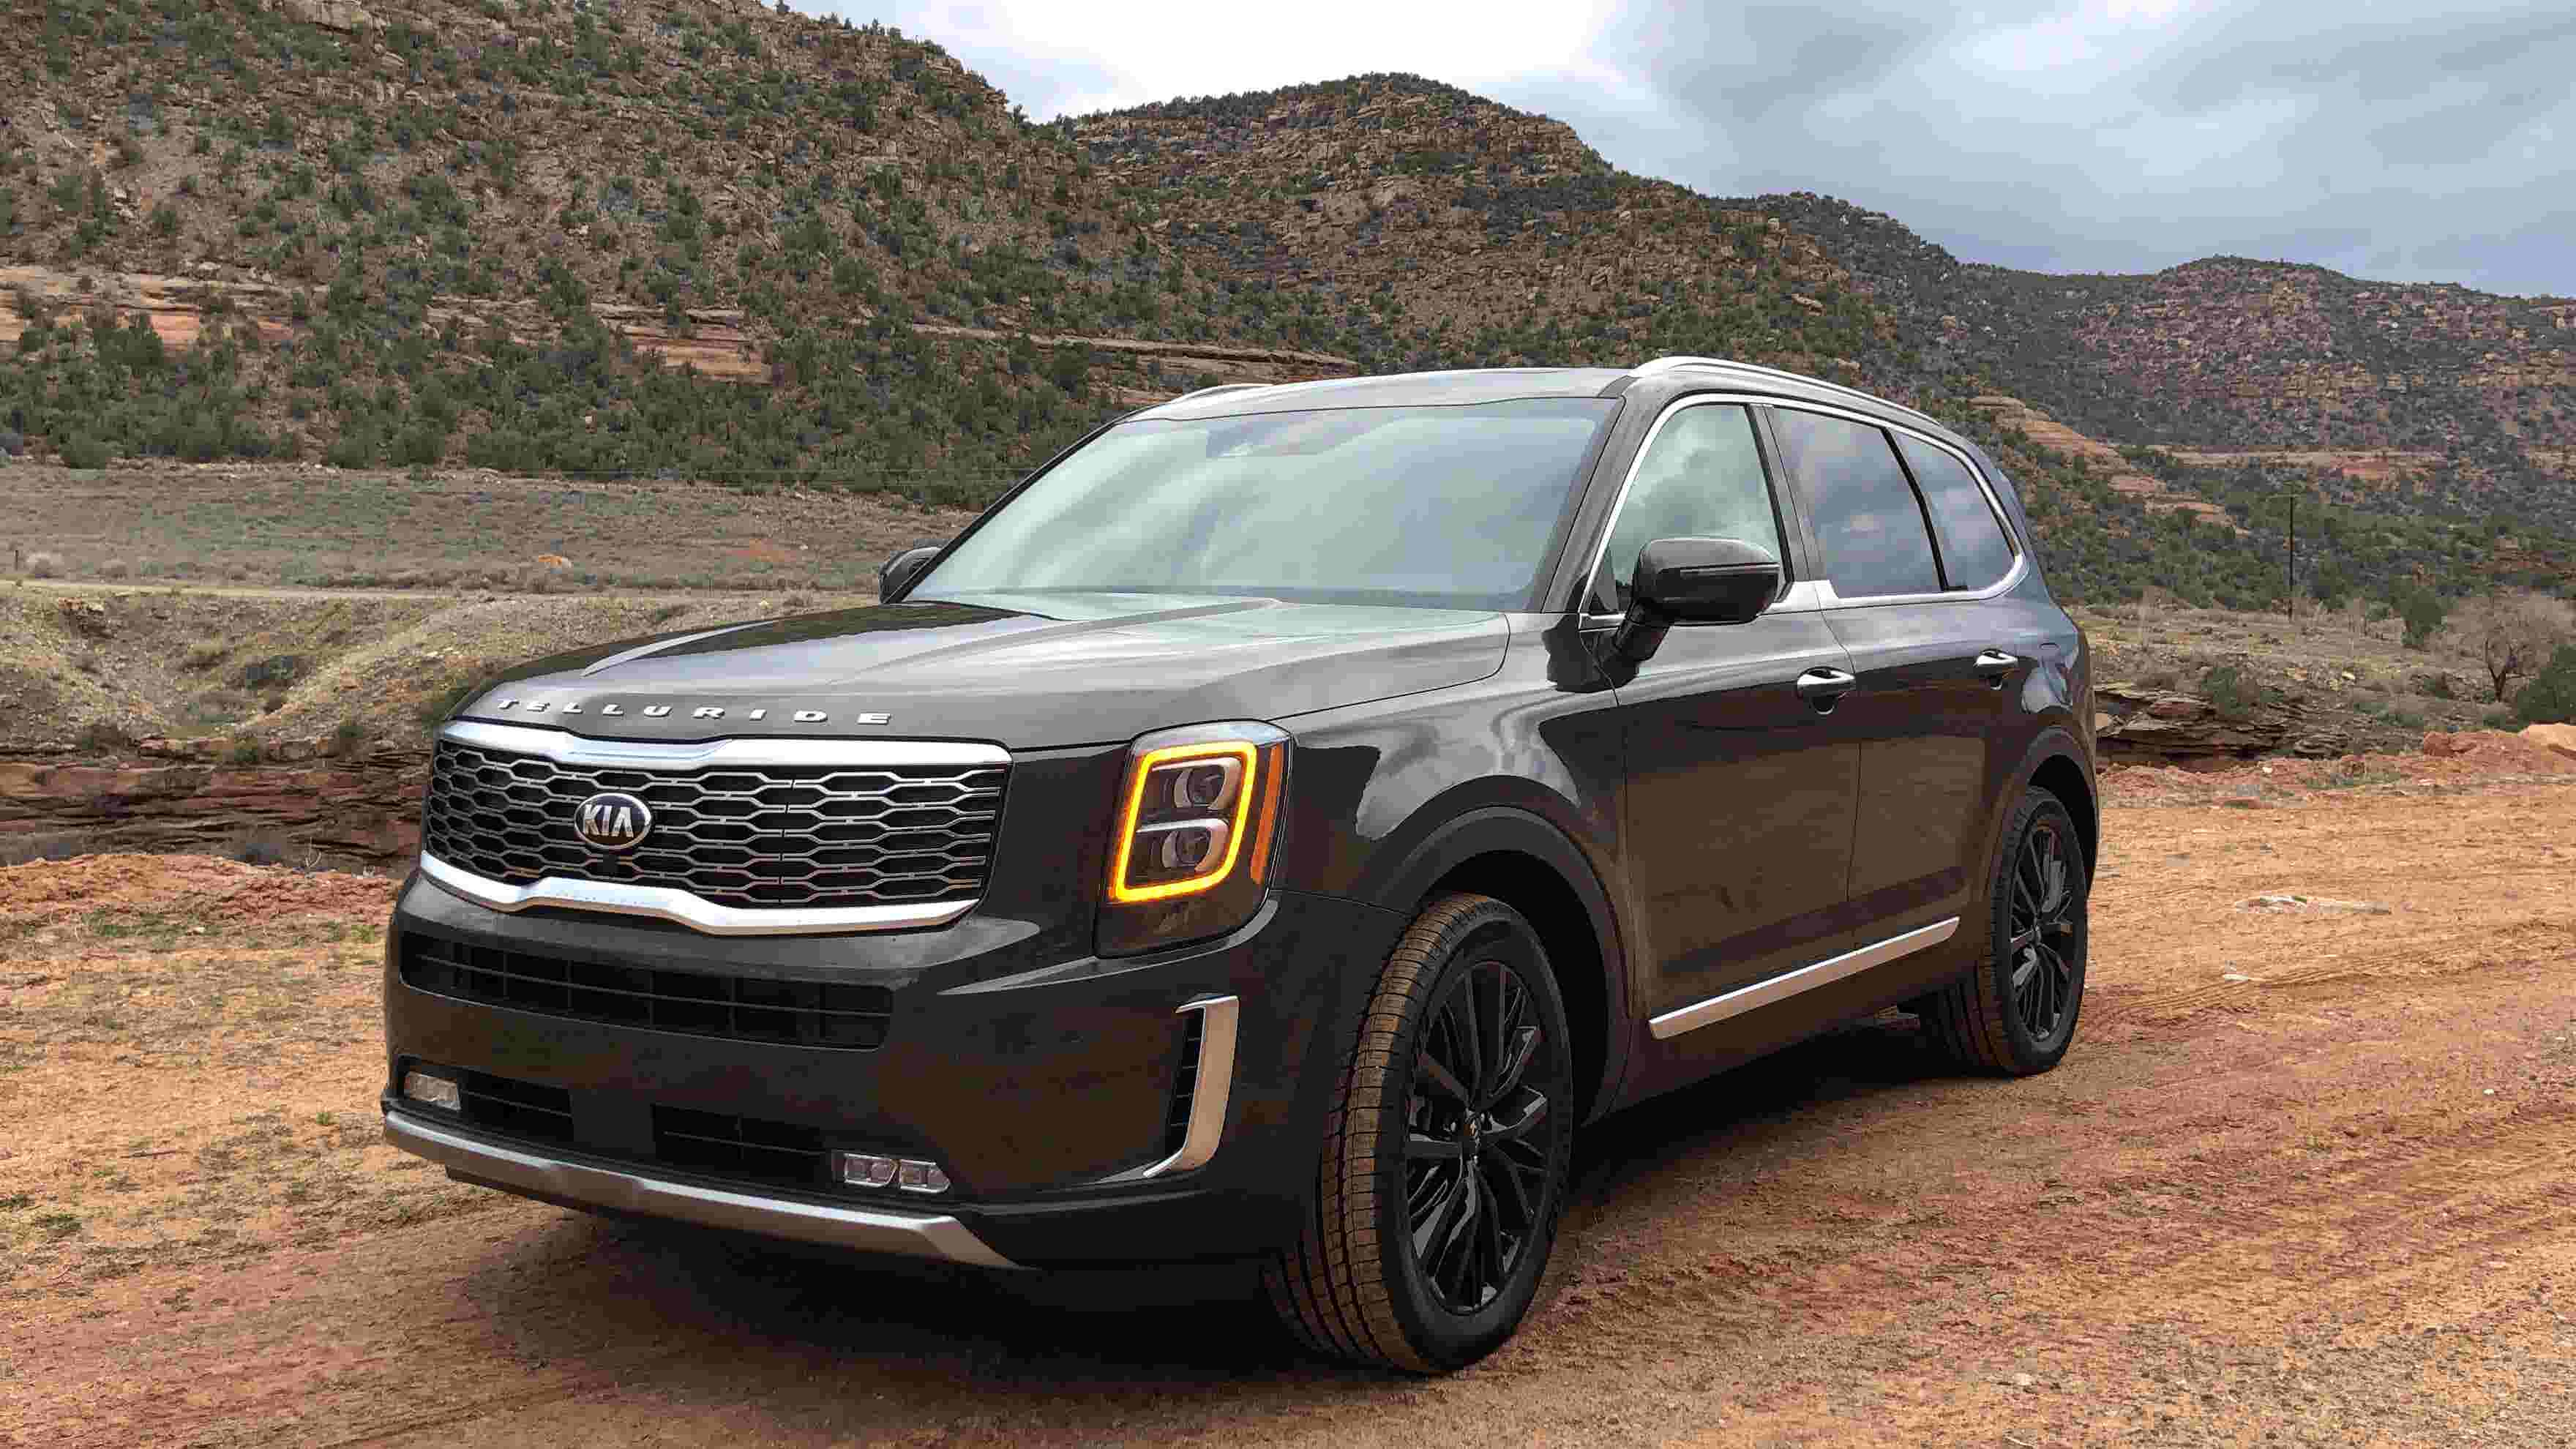 2020 Kia Telluride looks, rides like luxury SUV — without the price tag